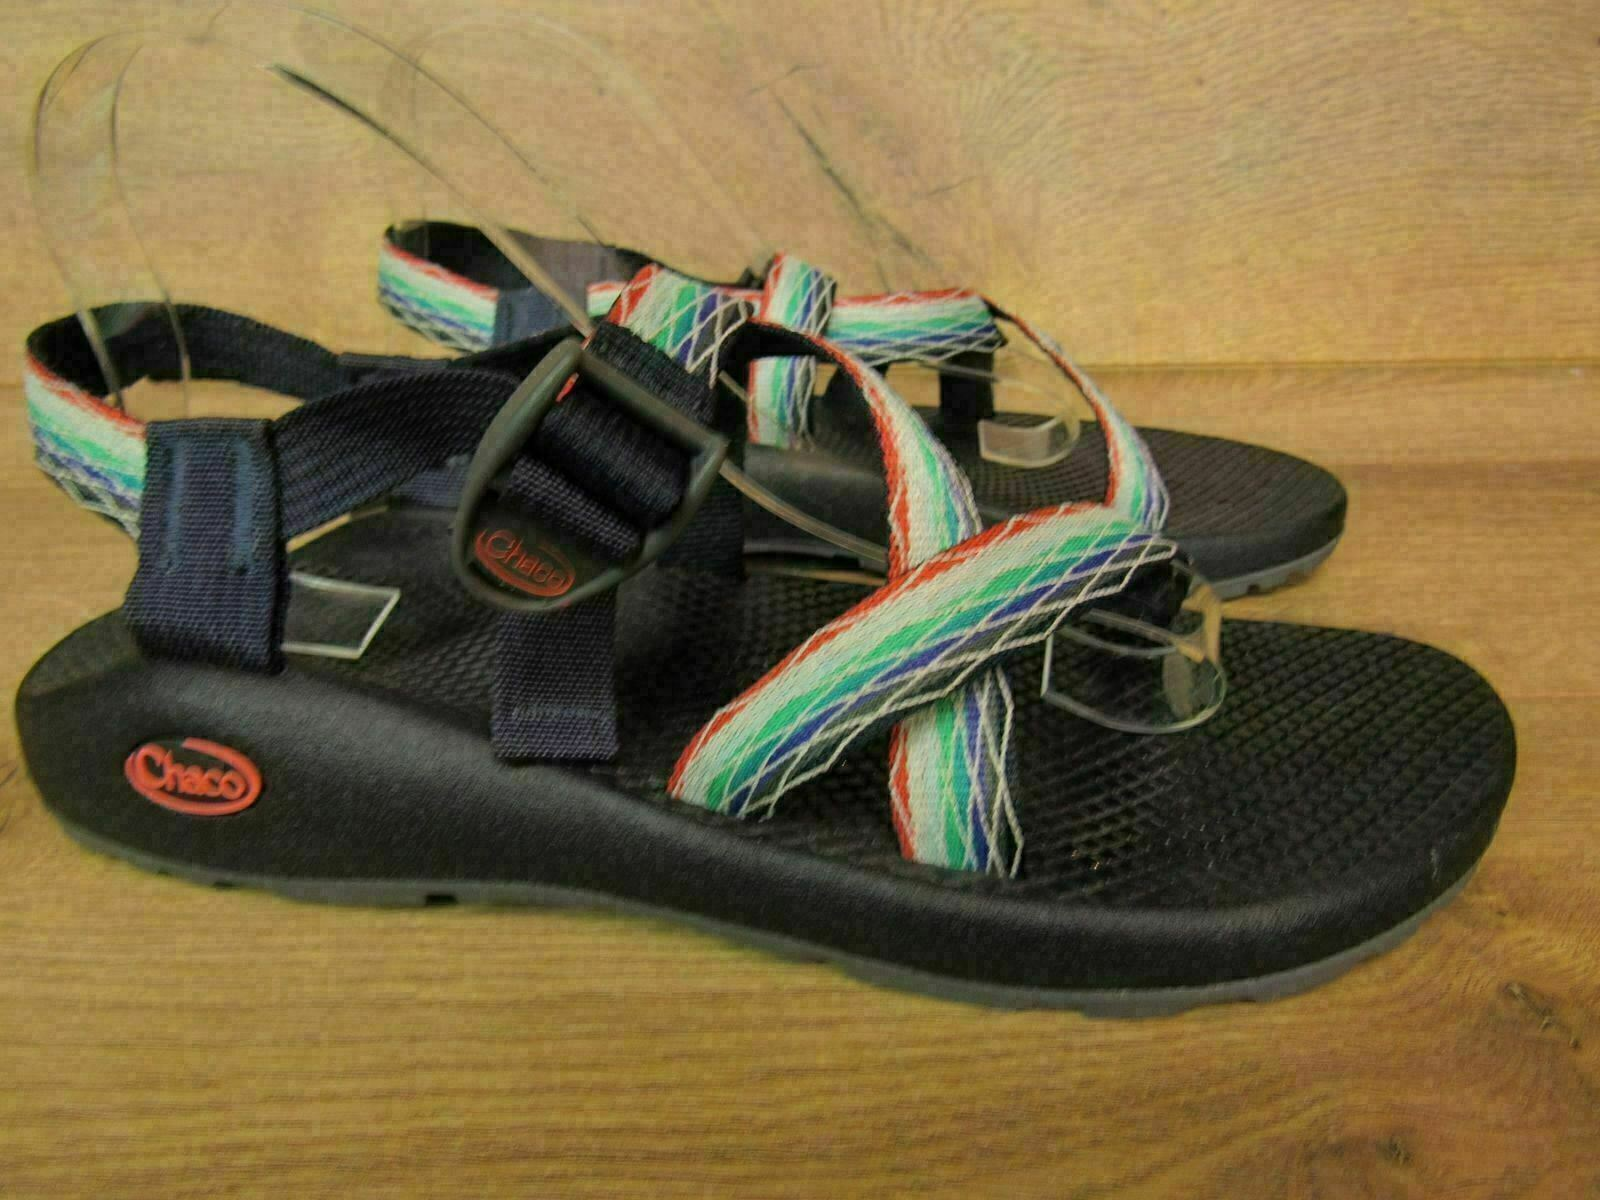 Chaco Rainbow Womens Sandals Size 11